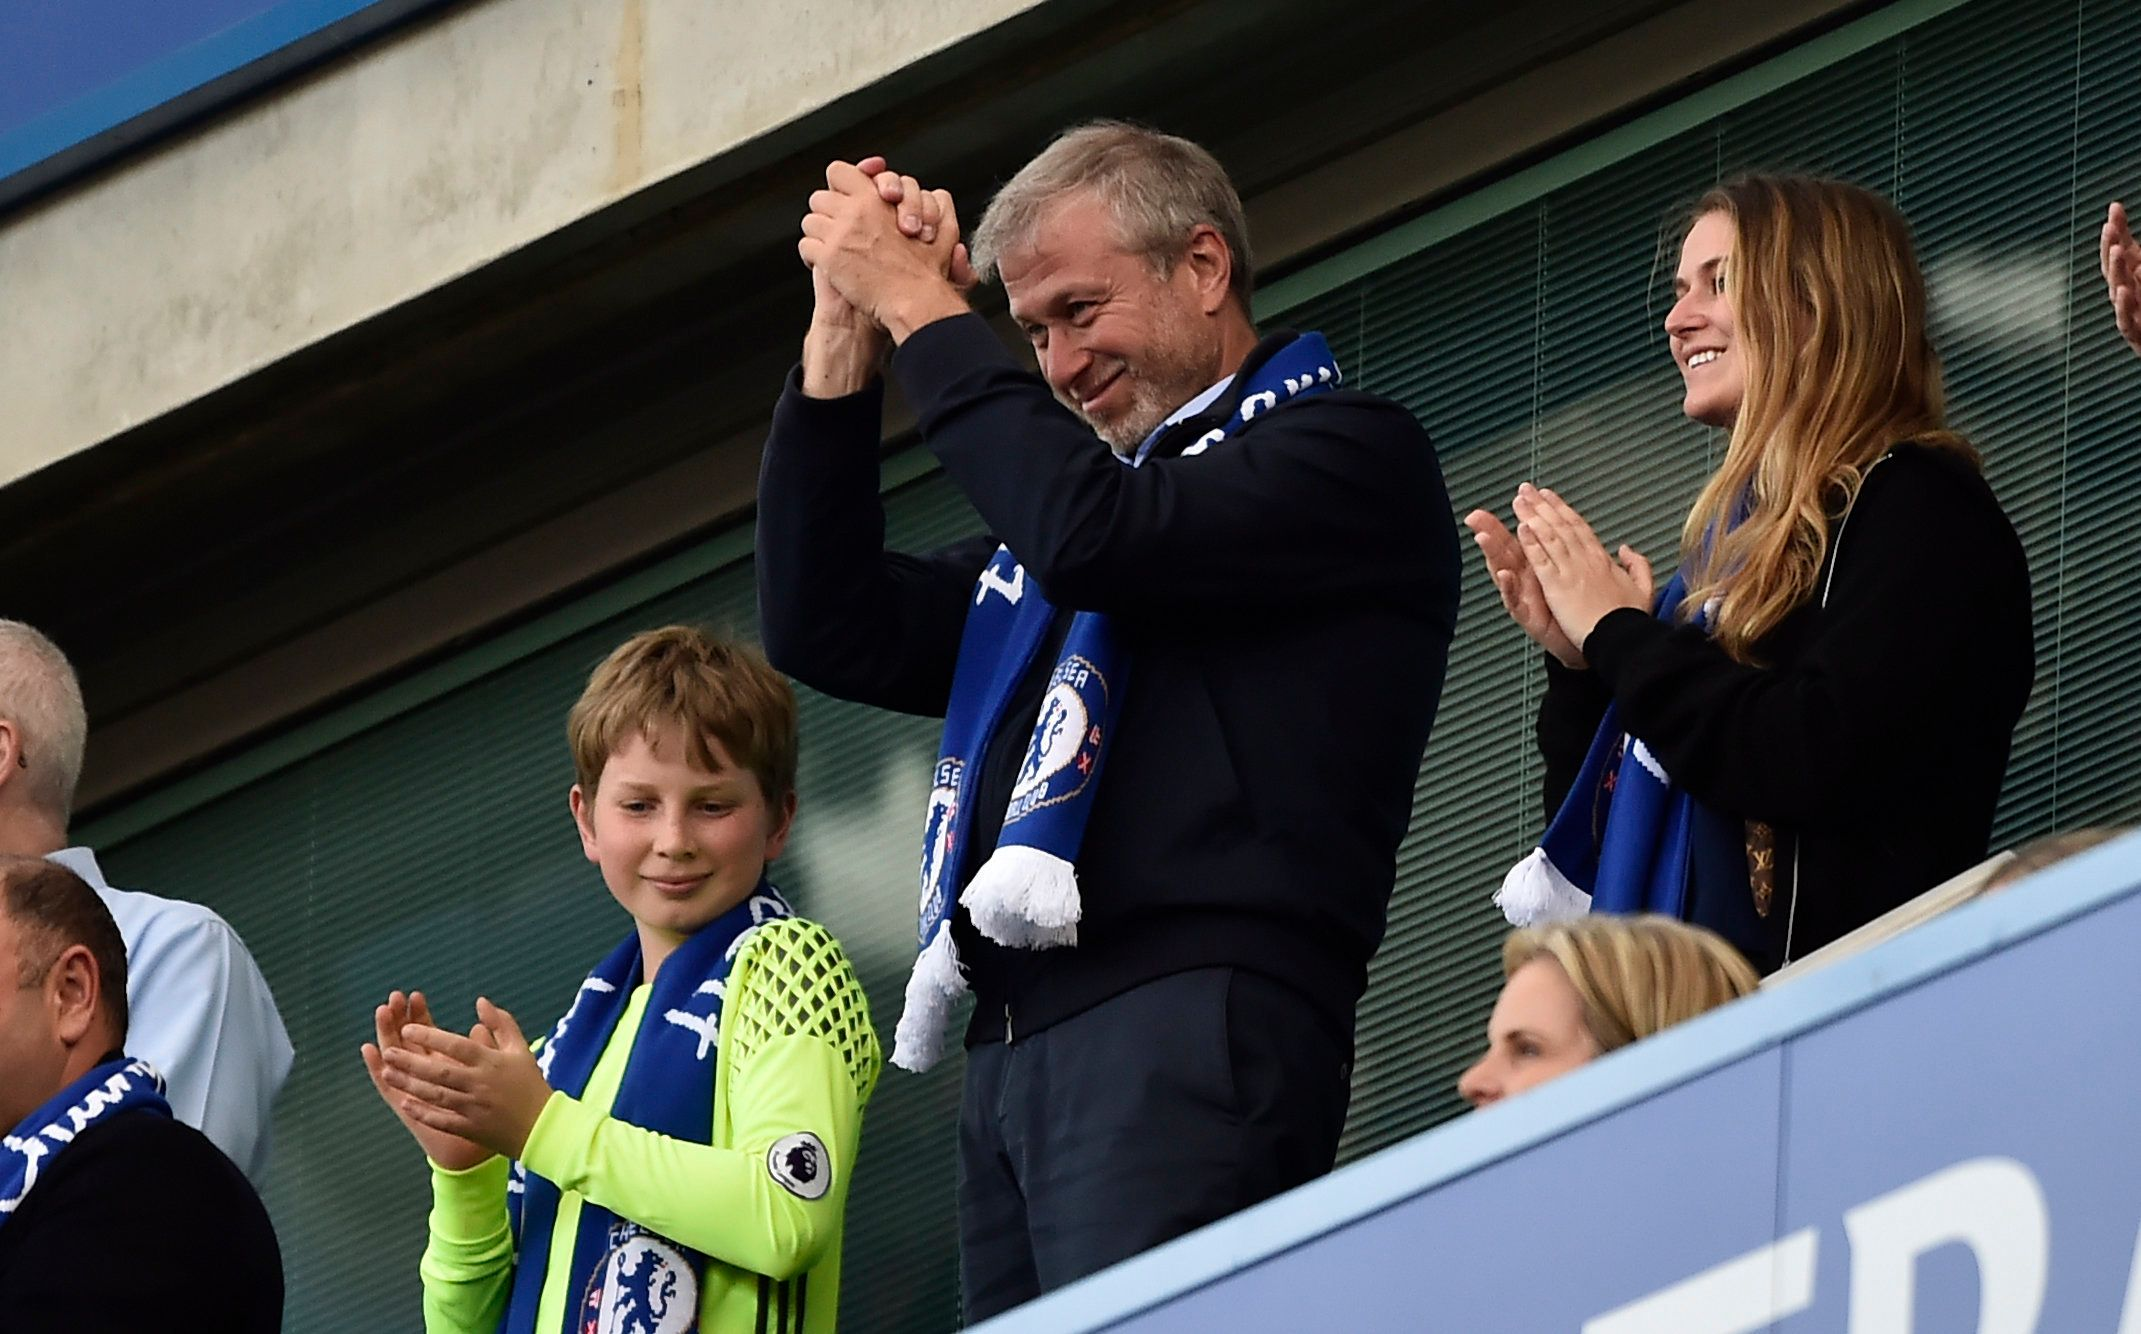 Chelsea owner Abramovich immigrates to Israel, becomes country's richest citizen